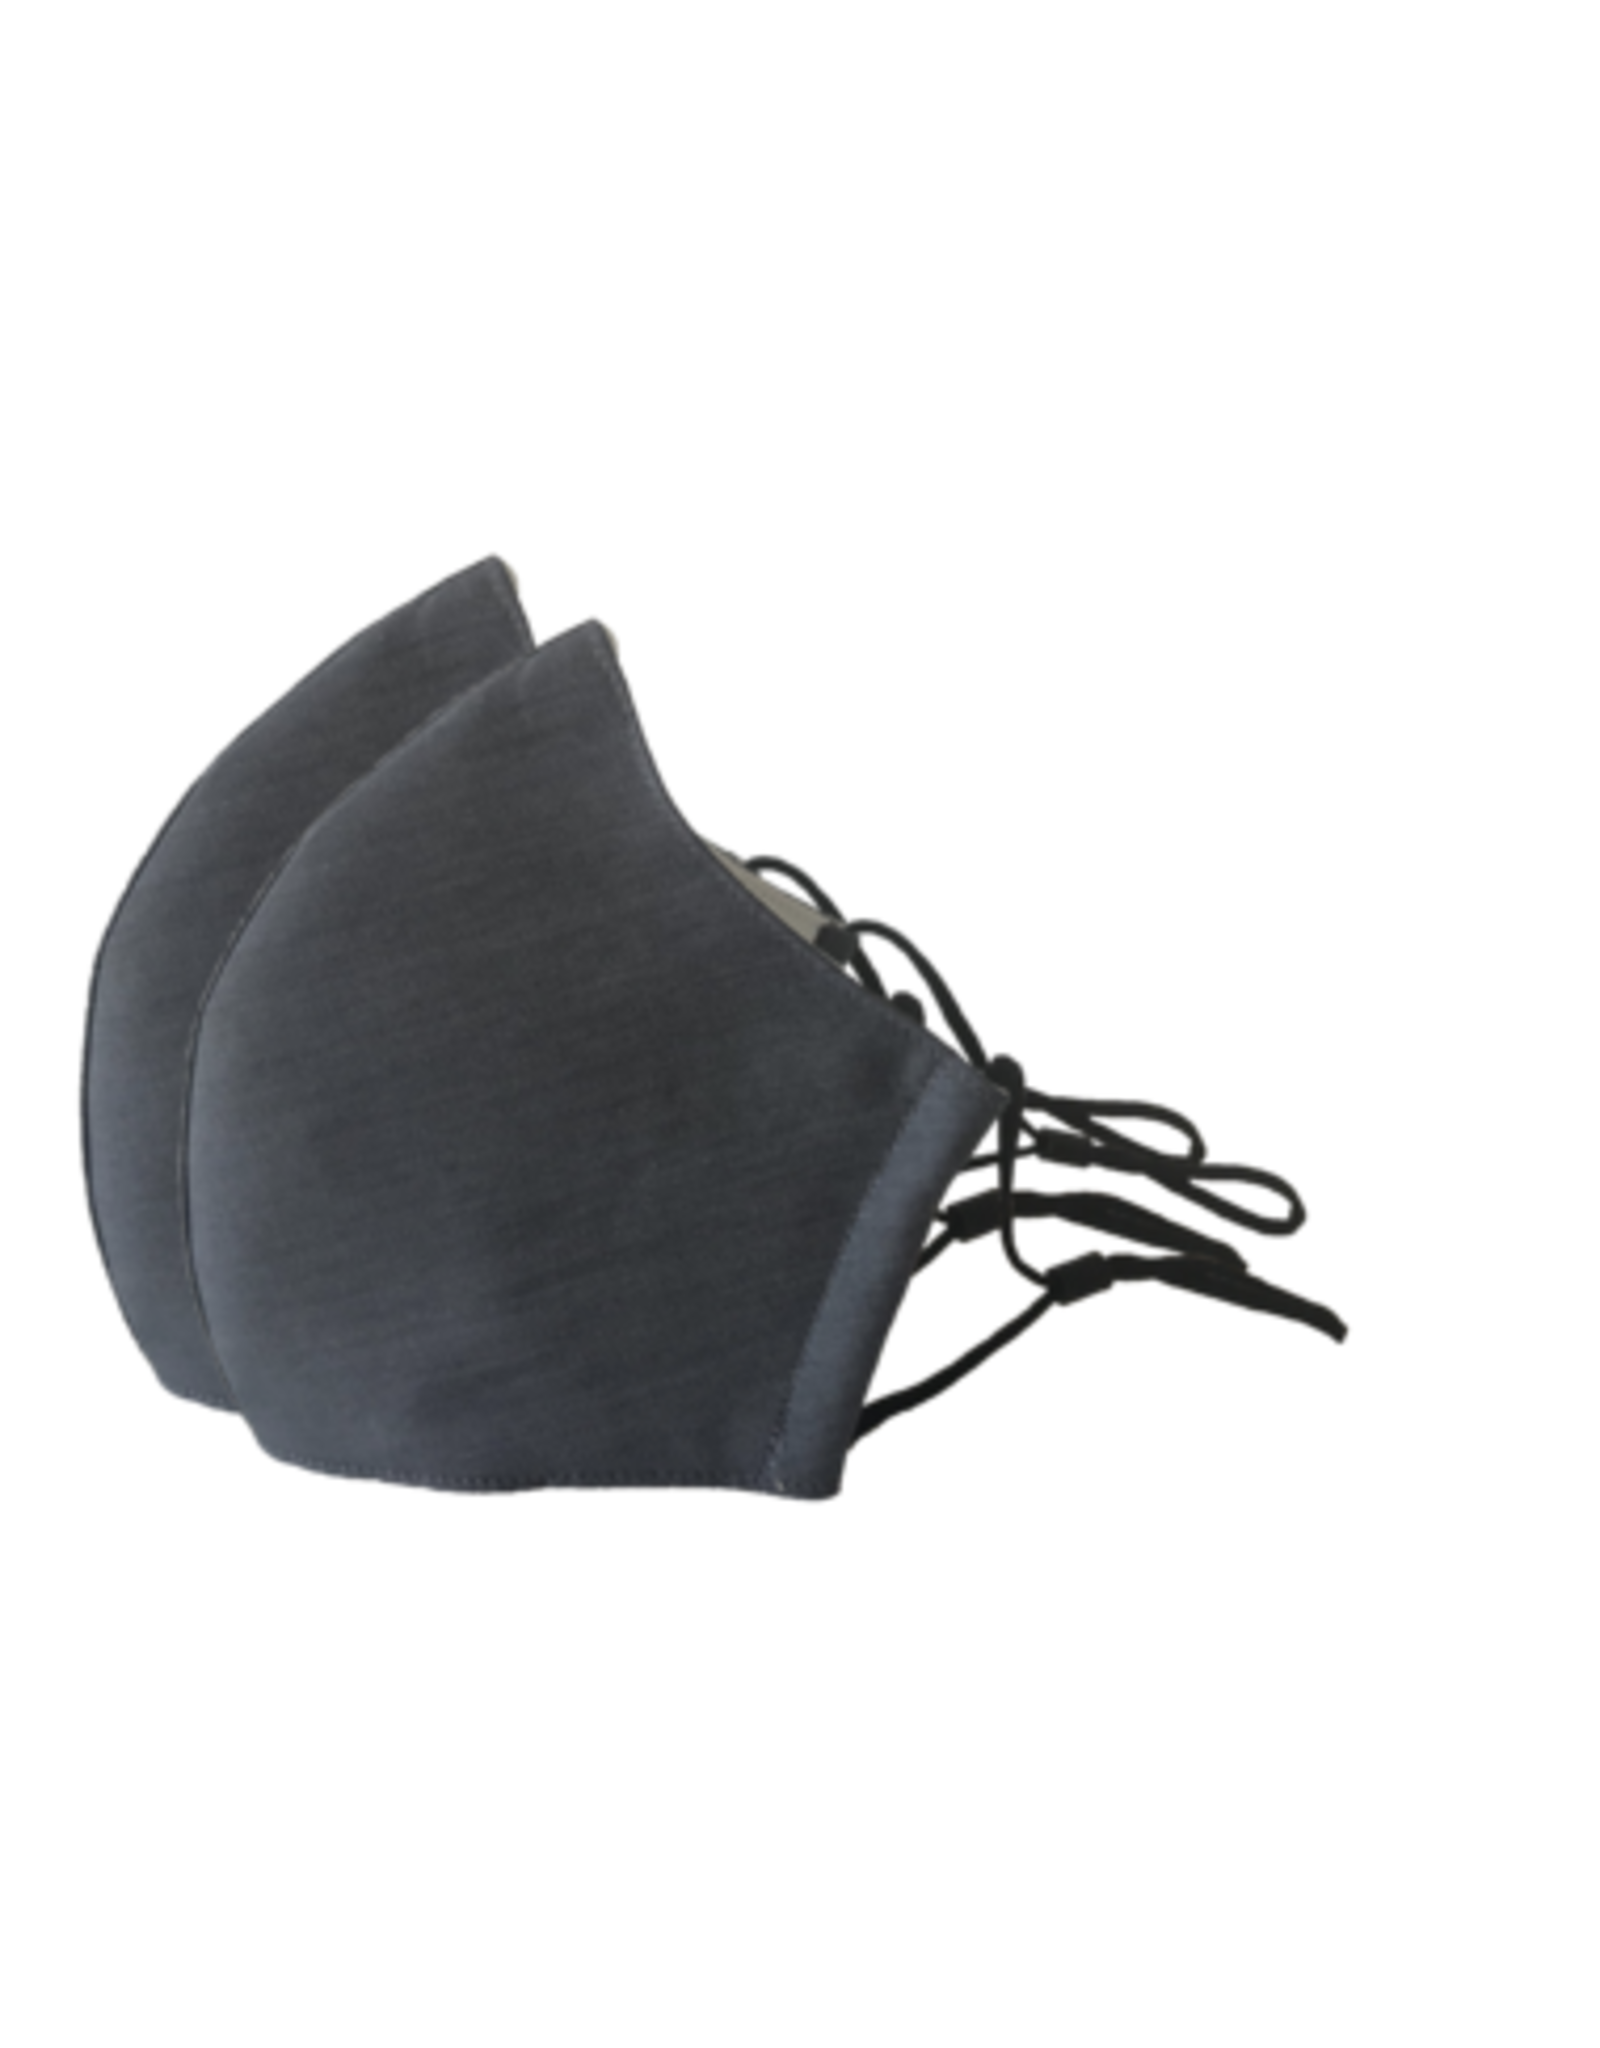 Happy Natural Products 3 Layer Mask - Charcoal